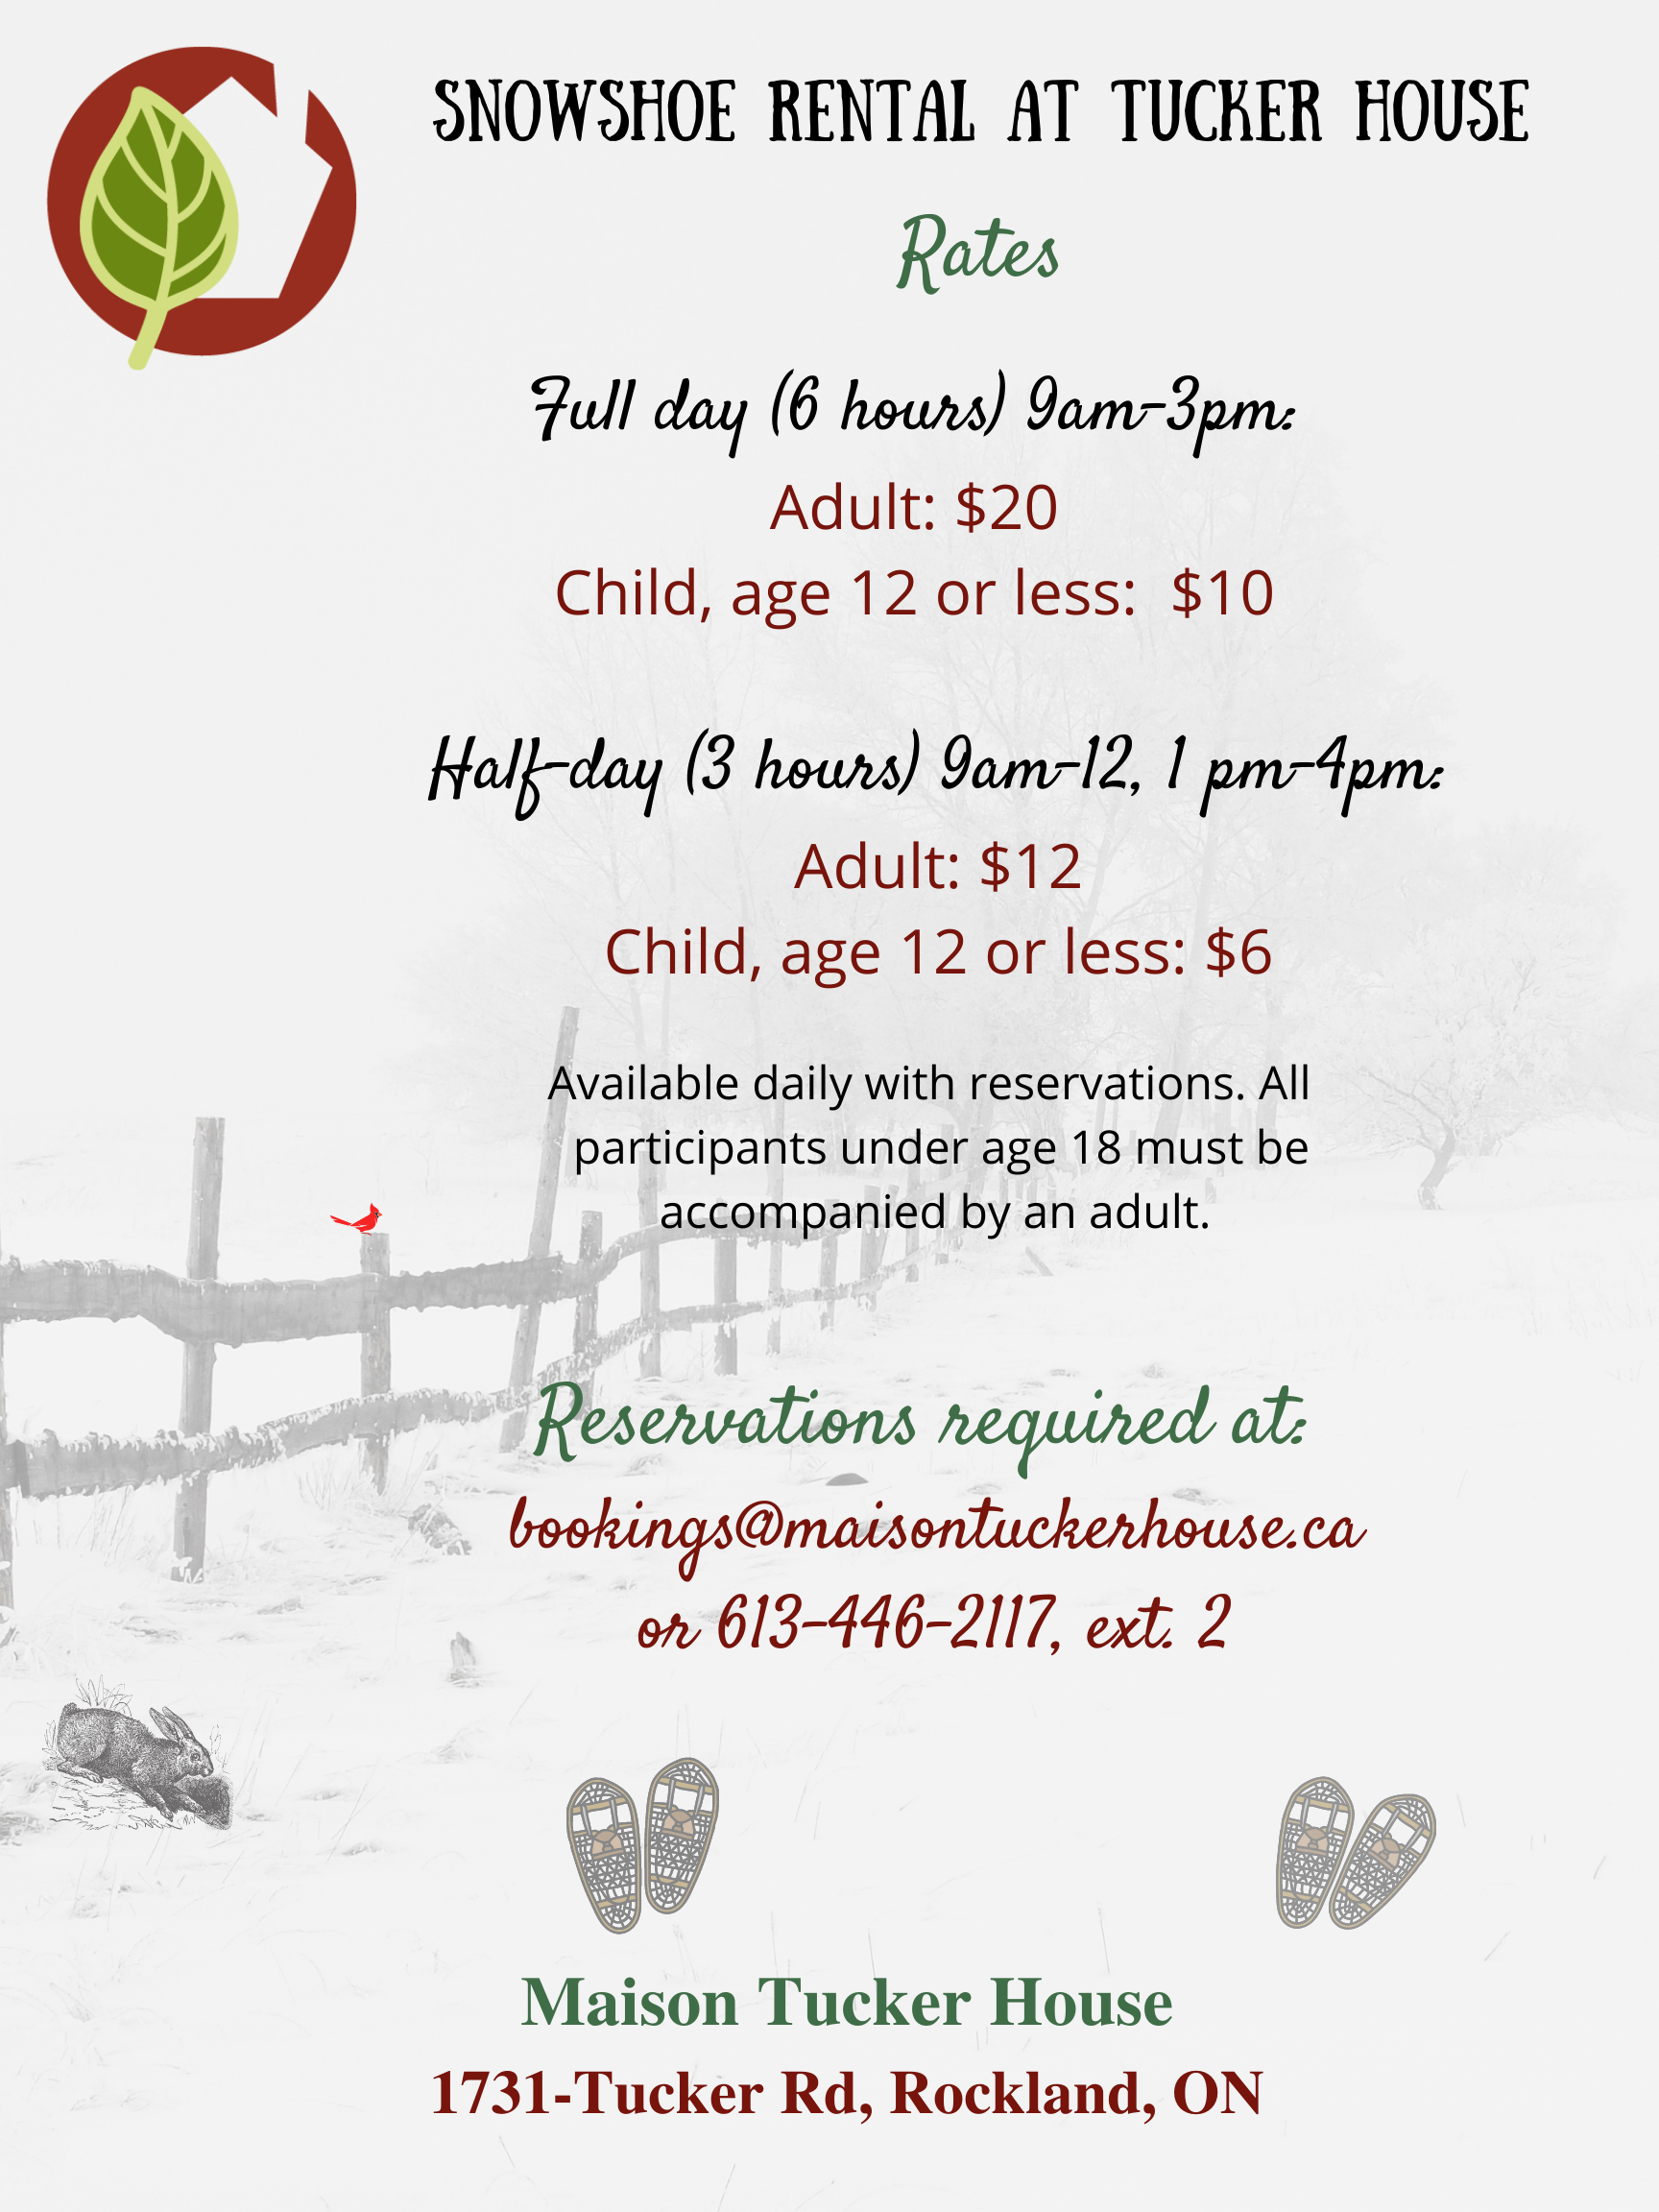 *UPDATED* Snowshoe Rental at Tucker House